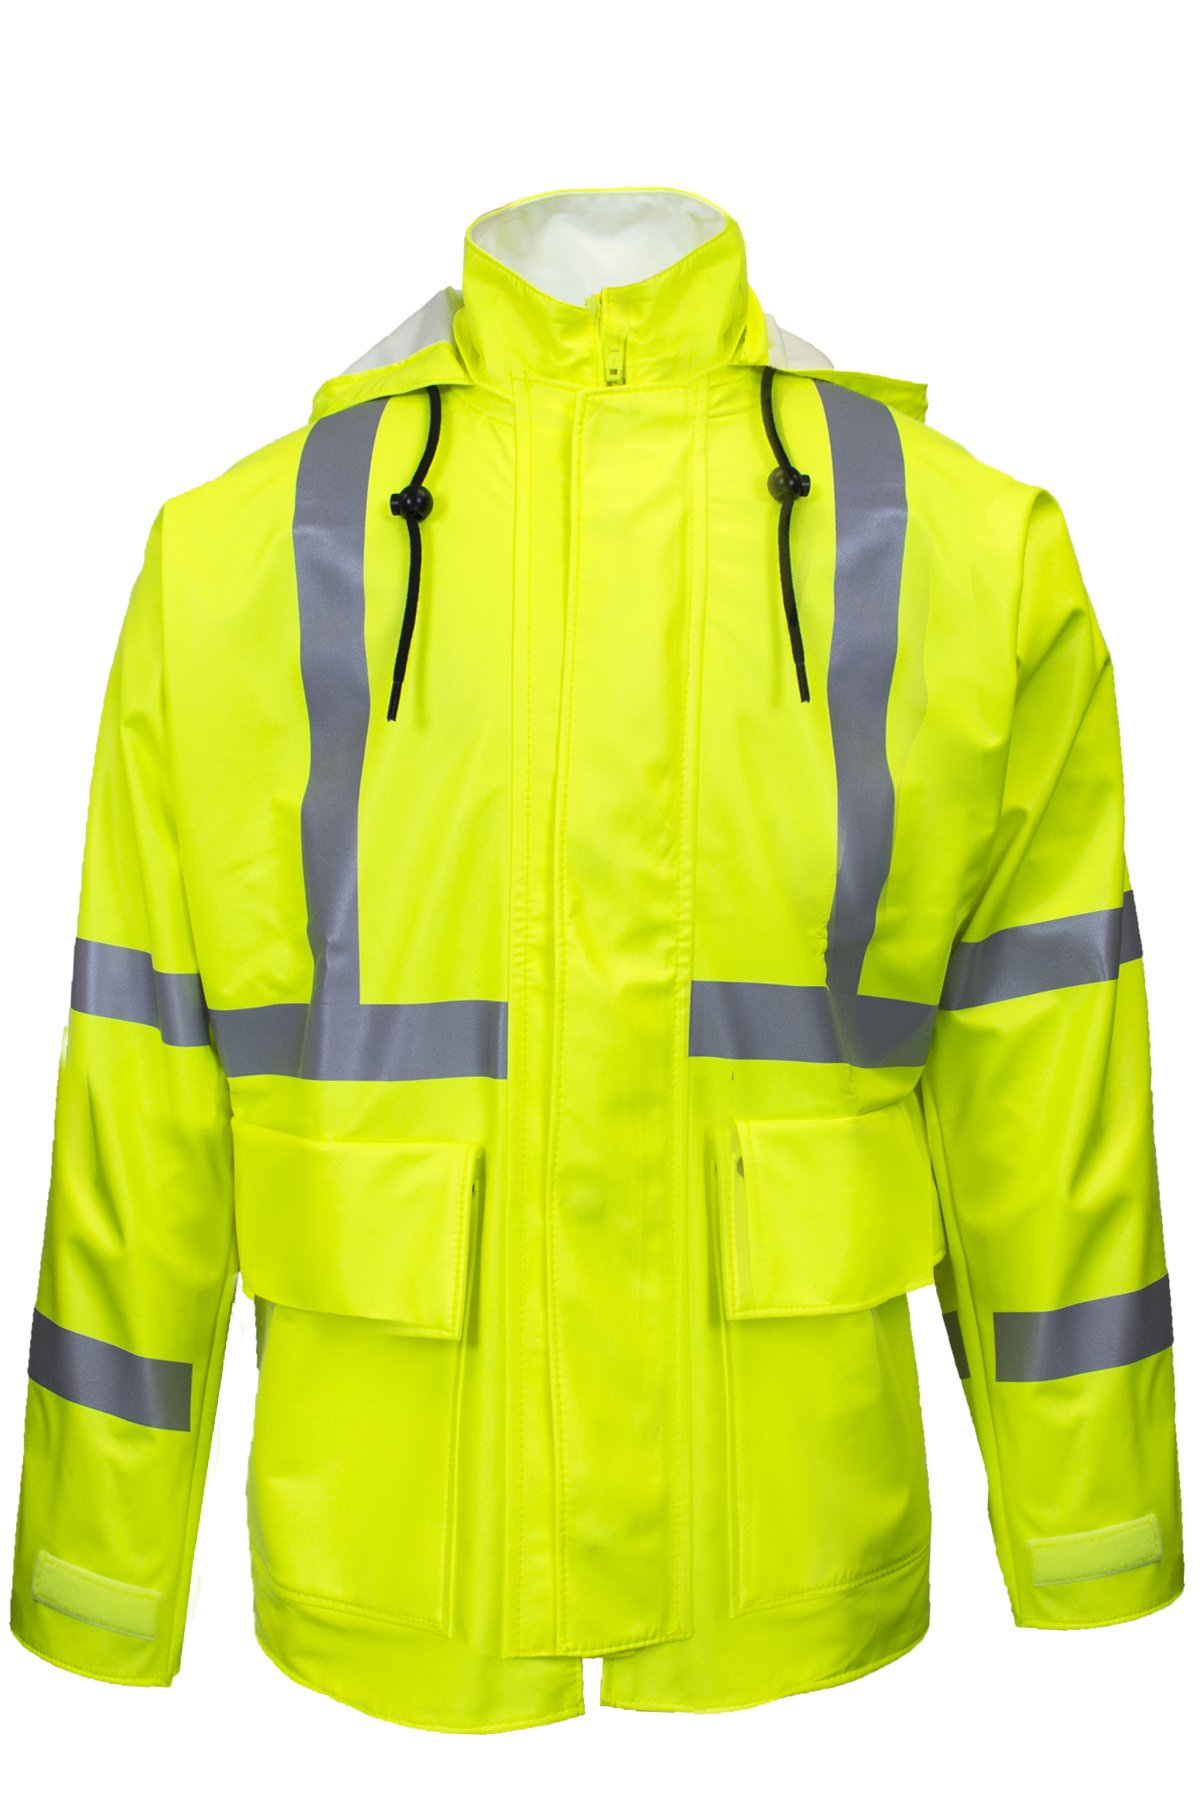 National Safety Apparel R30RL05LG Arc H2O FR Rain Jacket, Class 2, Large, Fluorescent Yellow